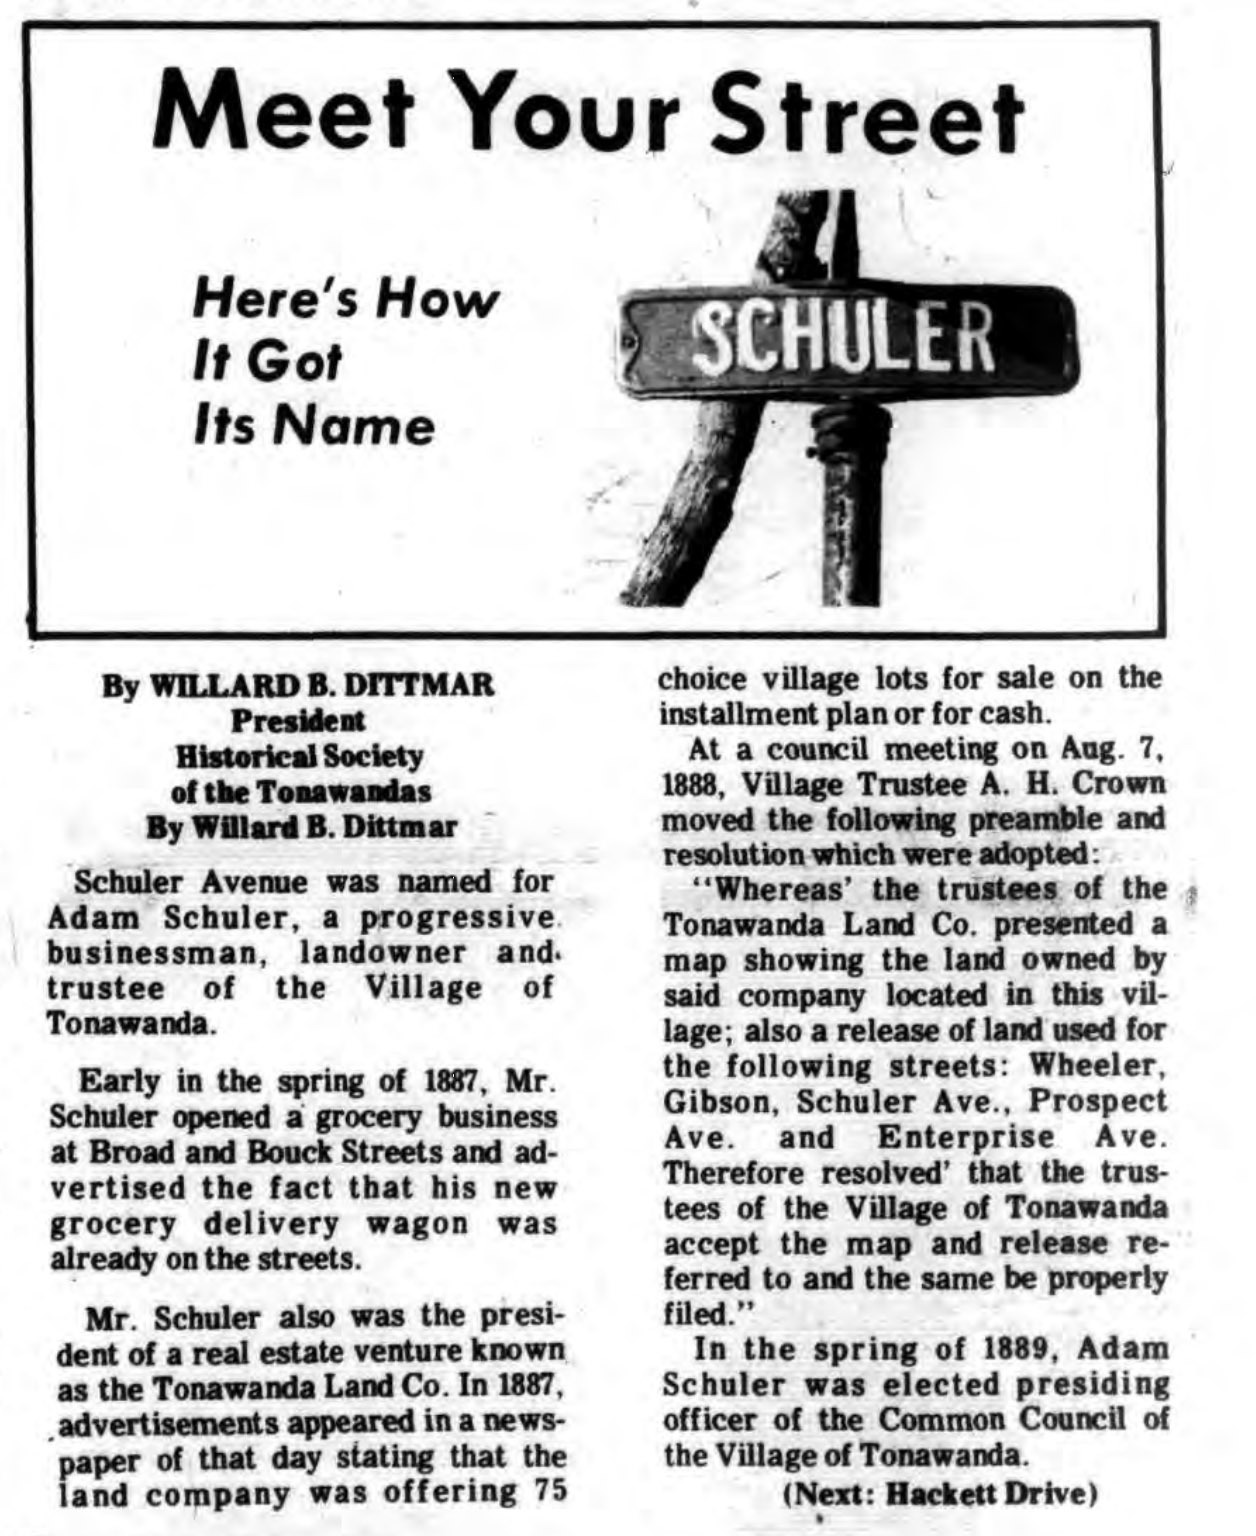 Meet Your Street - Schuler (Tonawanada News, 1970-12-17).jpg